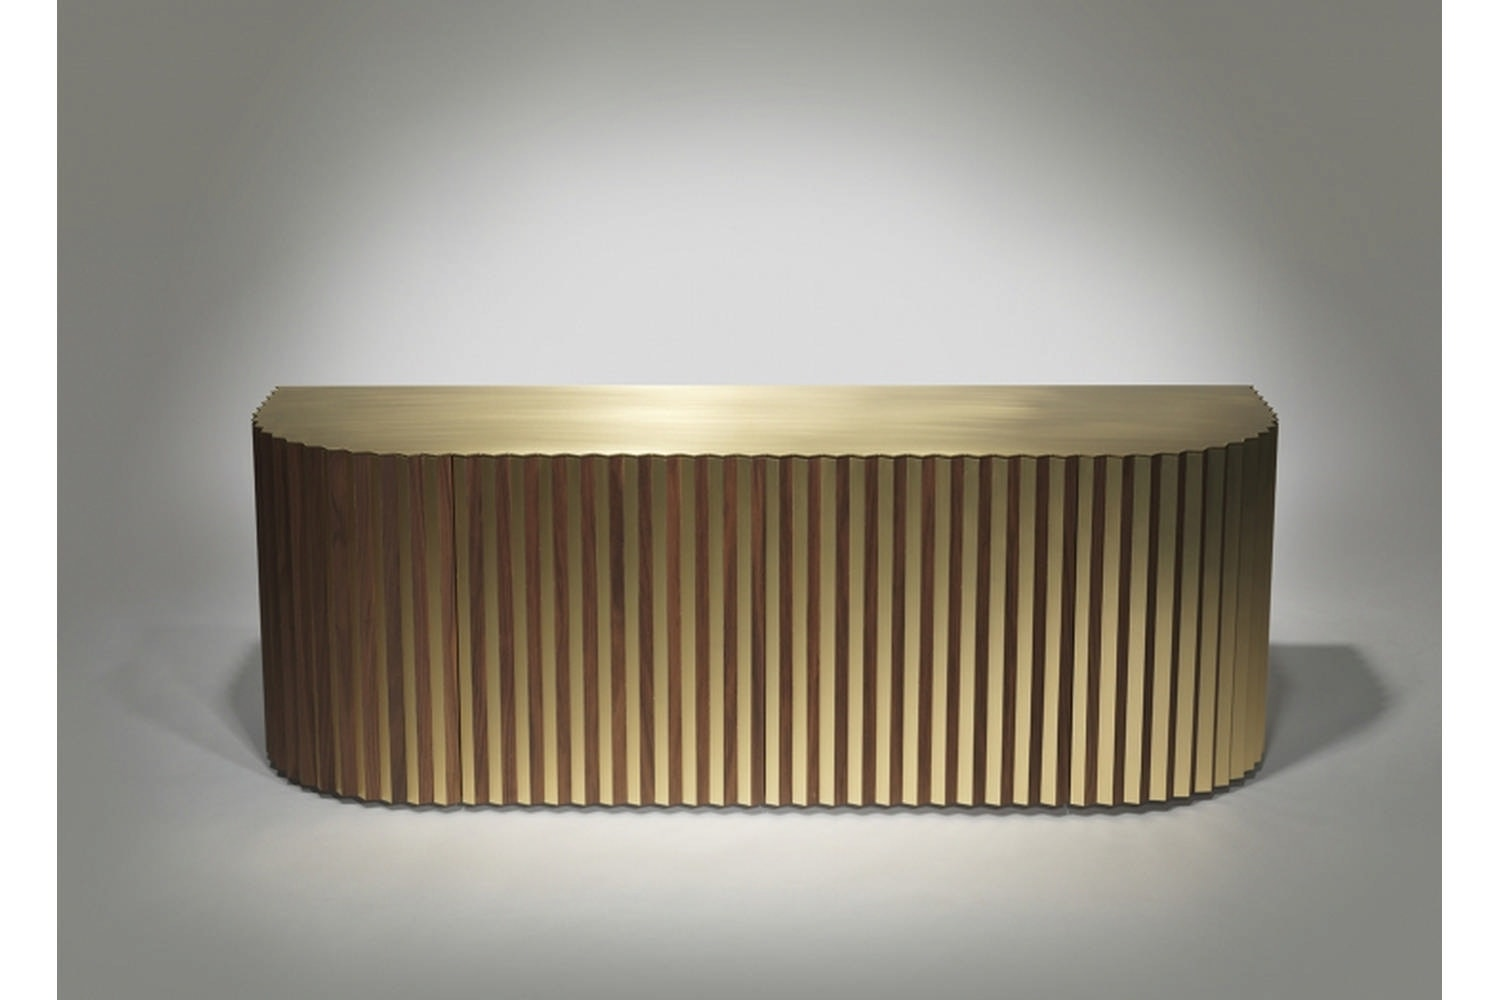 Shadow Cabinet - Brushed Brass by Lee Broom